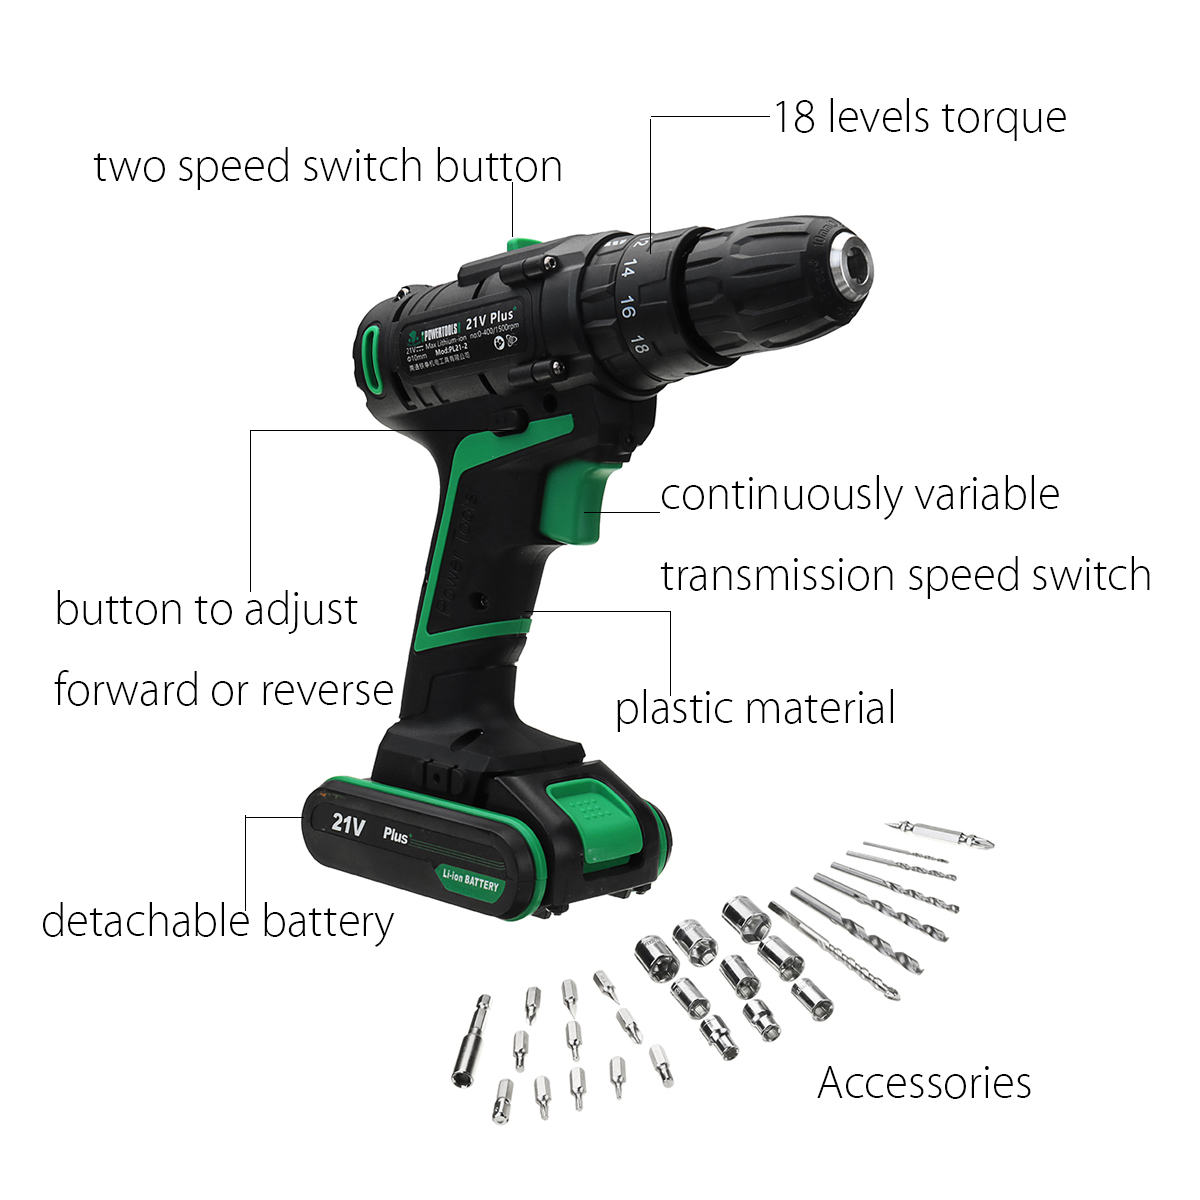 21V 1.5Ah Li-ion Cordless Electric Hammer Power Drills 2-Speed Power Screwdriver with 2 Battery